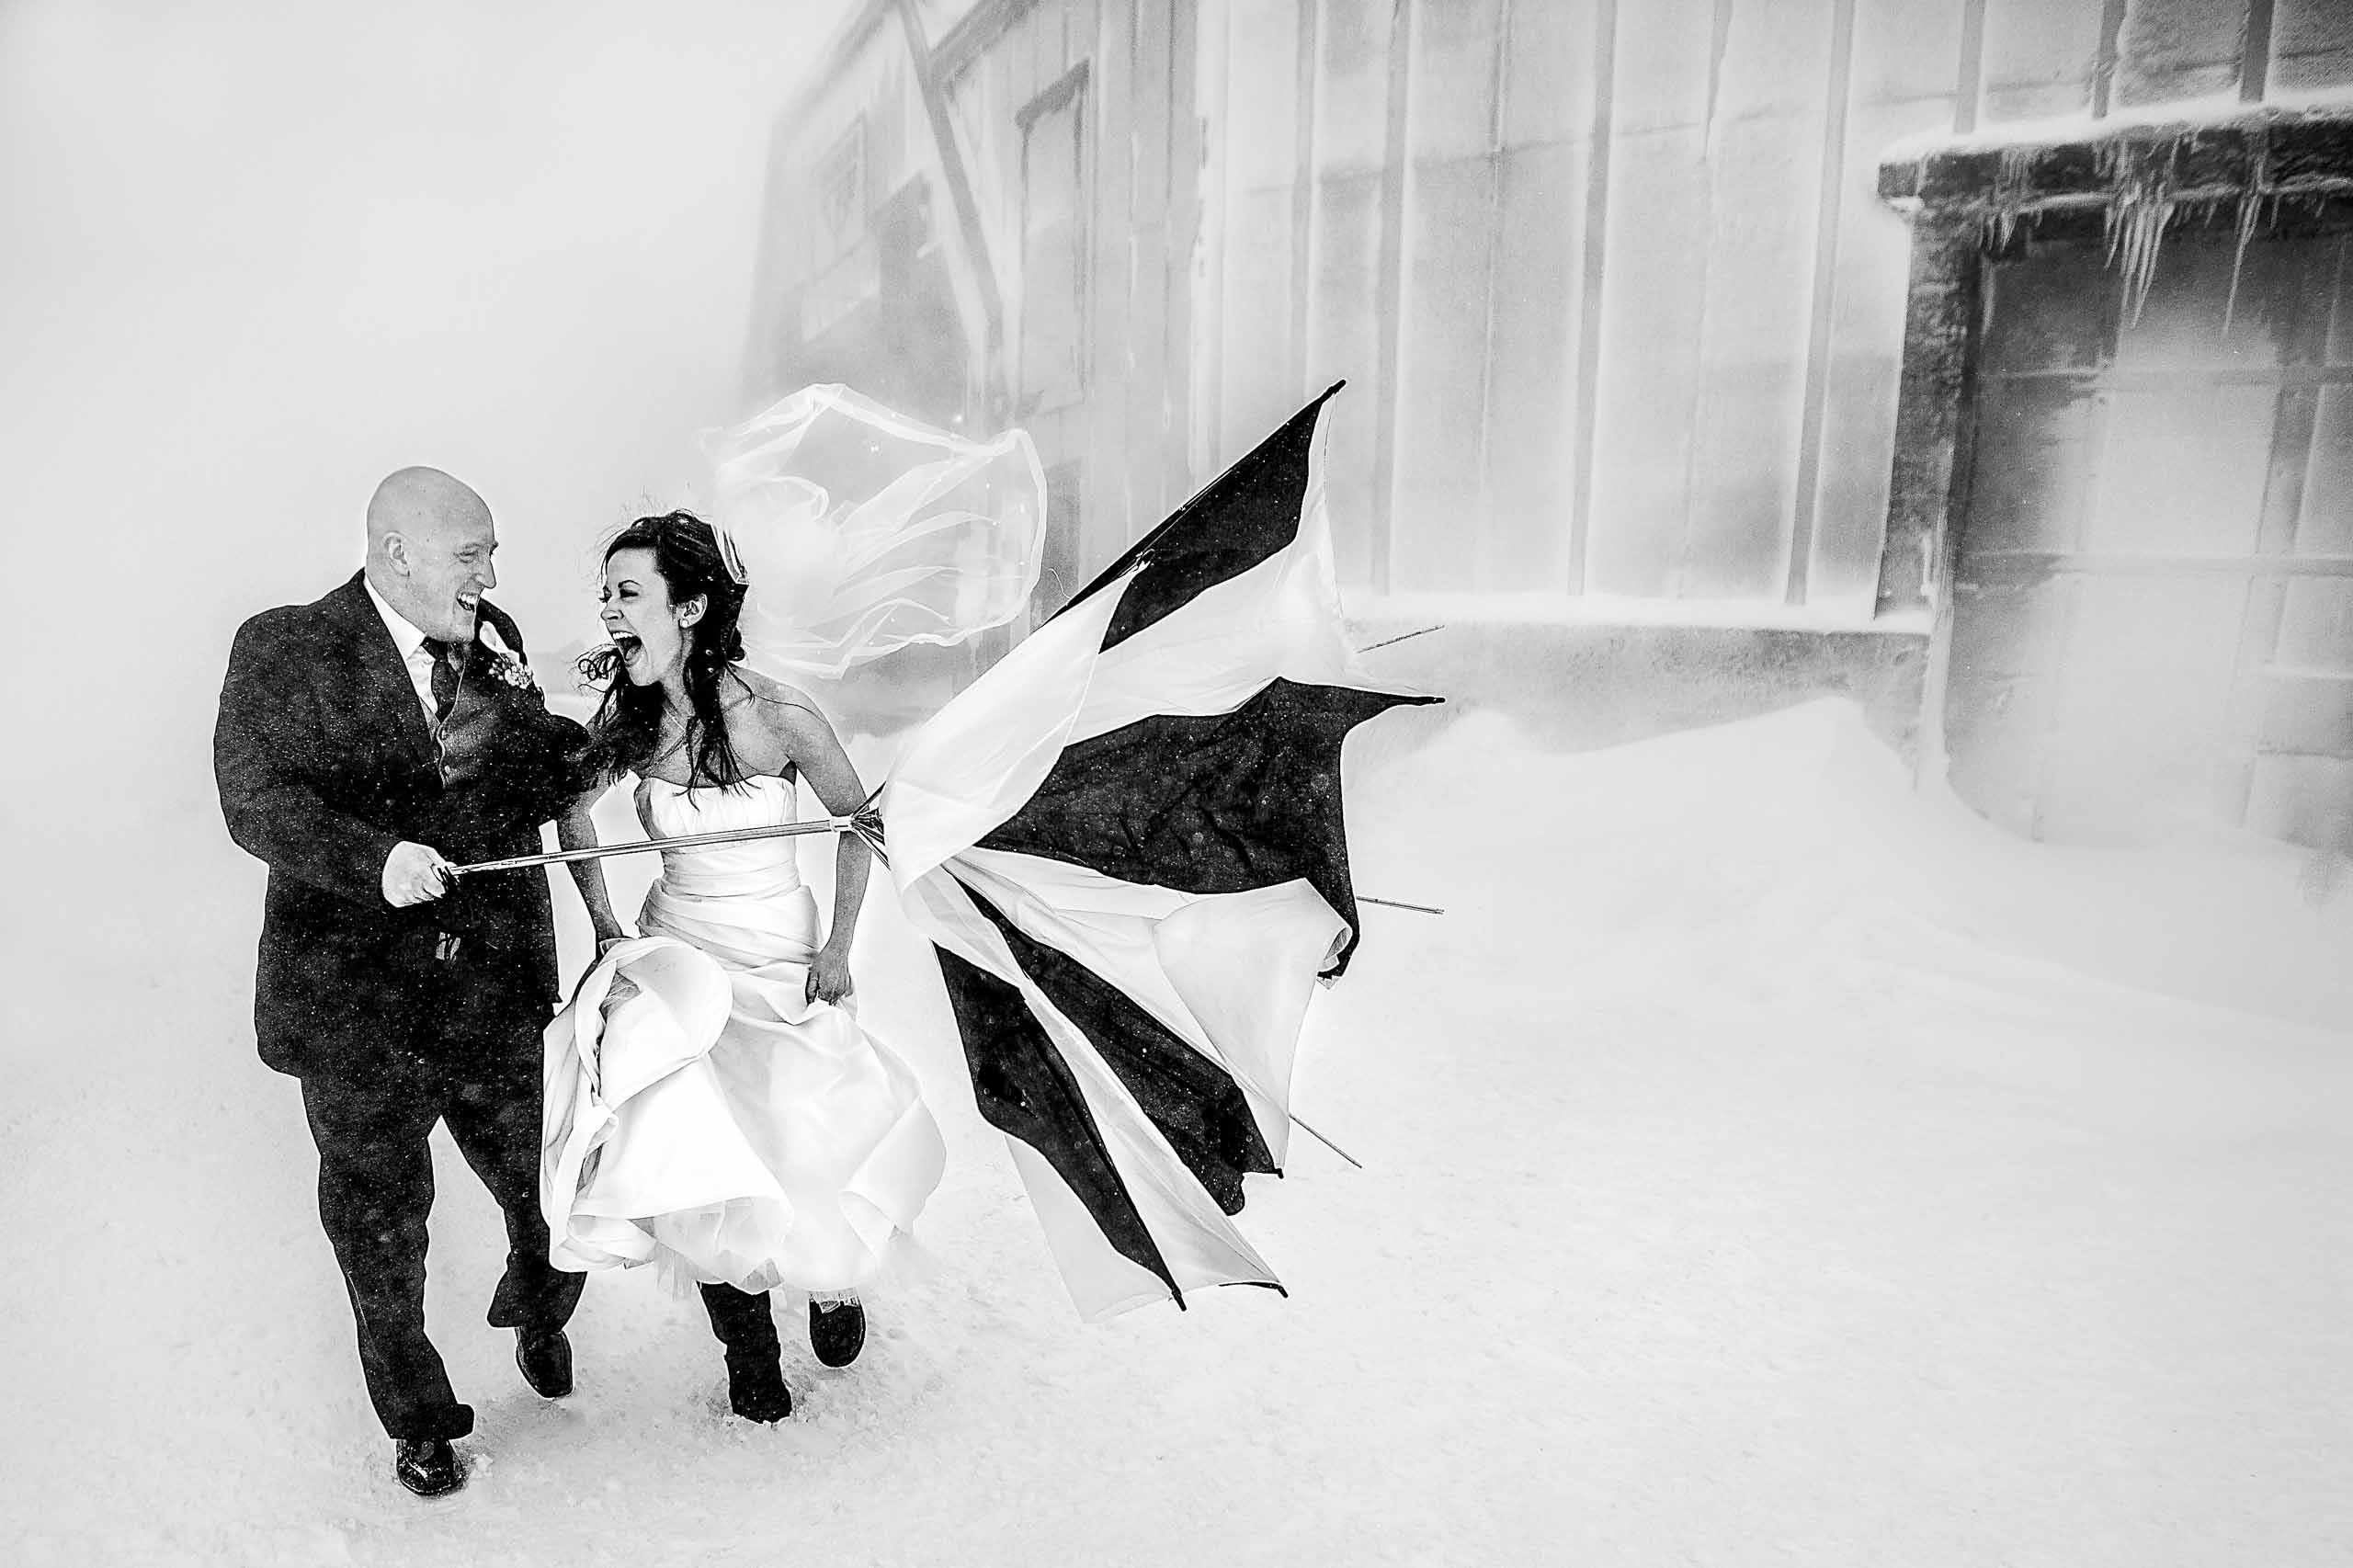 Ecstatic couple running in the snow and wild wind with their umbrella inverted. Captured atop Mt Hood near Silcox Hut. Award winning wedding photo by Fearless Photographers